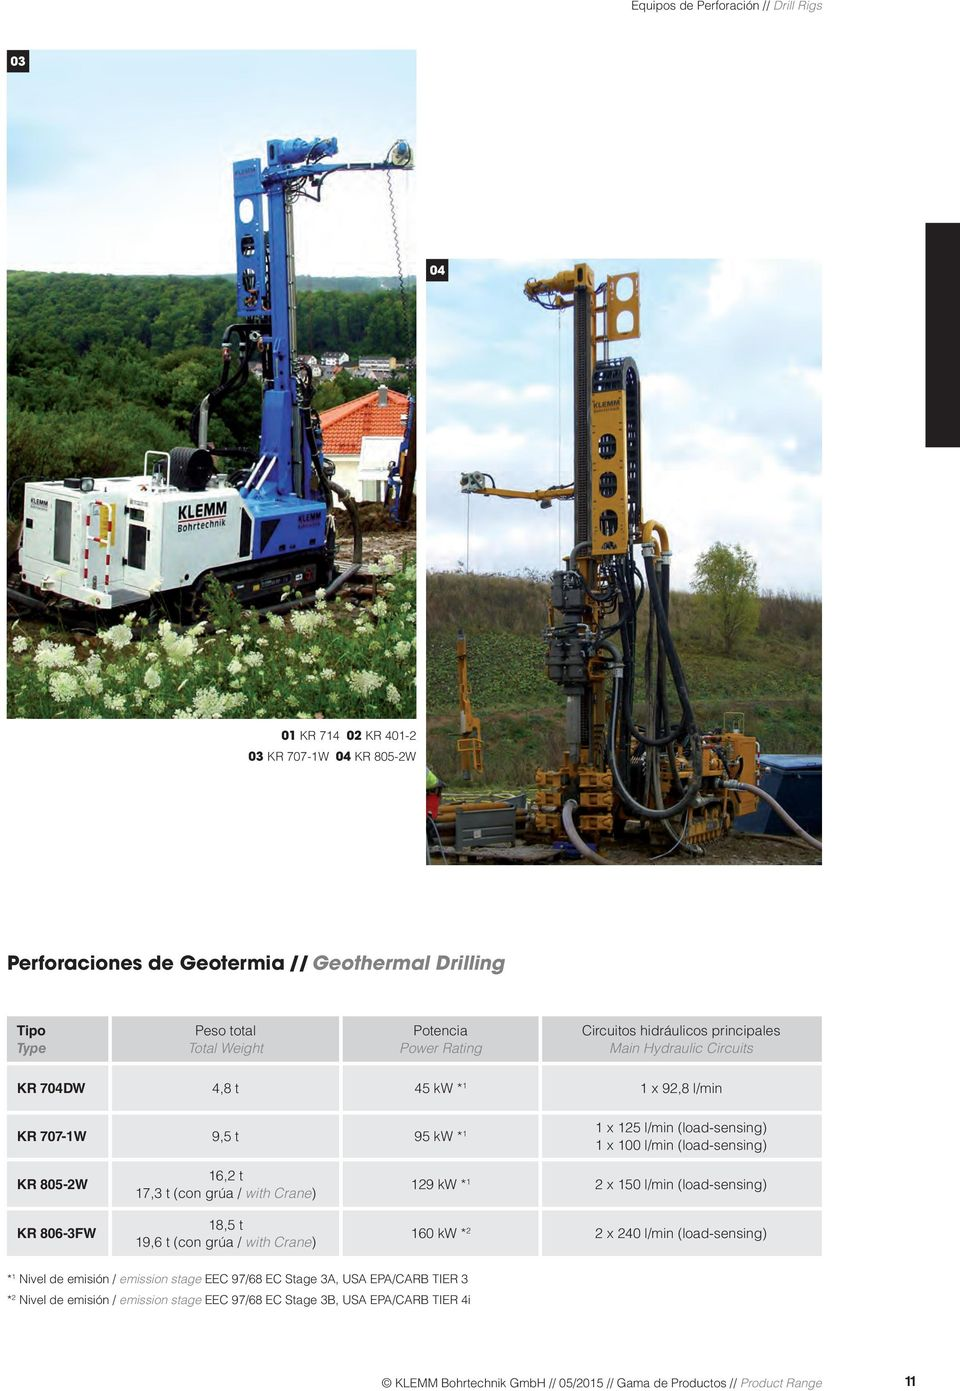 806-3FW 16,2 t 17,3 t (con grúa / with Crane) 18,5 t 19,6 t (con grúa / with Crane) 129 kw * 1 2 x 150 l/min (load-sensing) 160 kw * 2 2 x 240 l/min (load-sensing) * 1 Nivel de emisión / emission